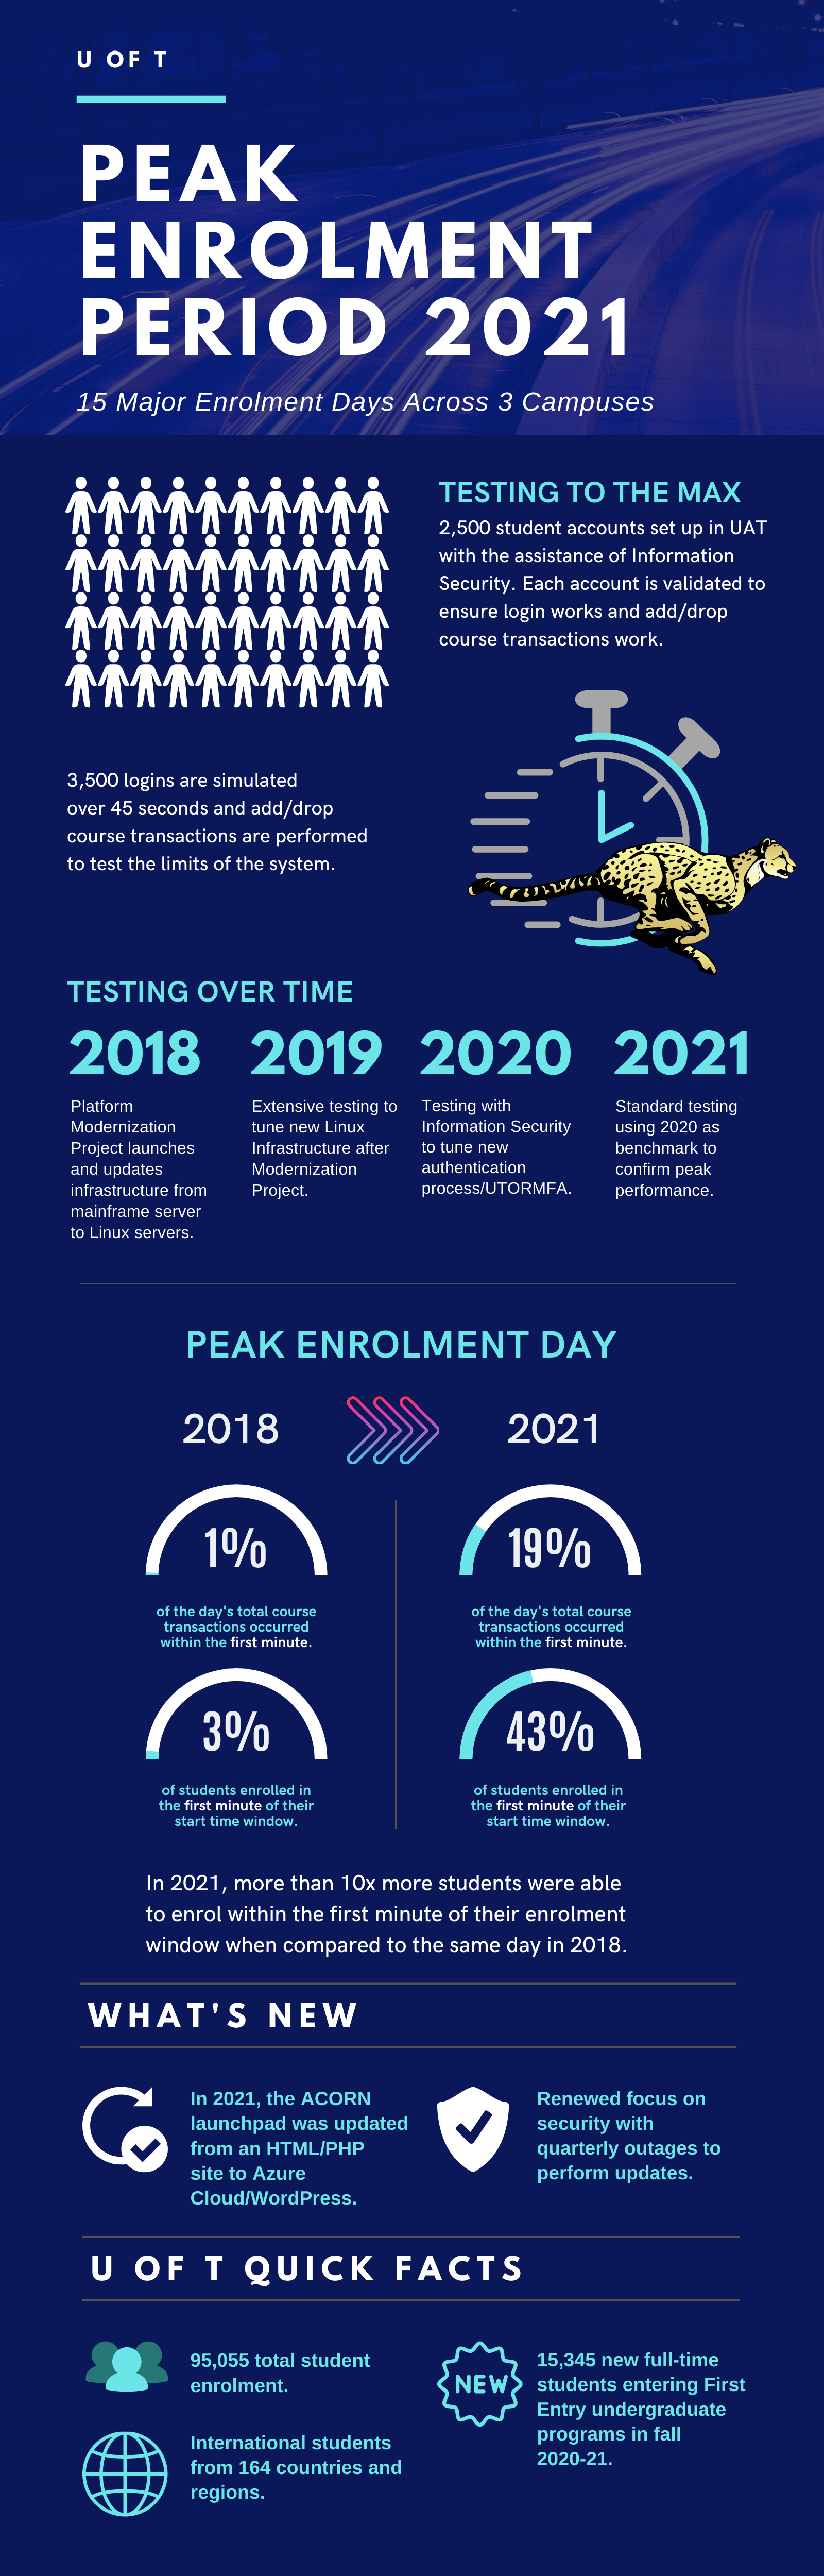 Infographic of the testing and improvements made for peak enrolment resulting in a major increase in speed